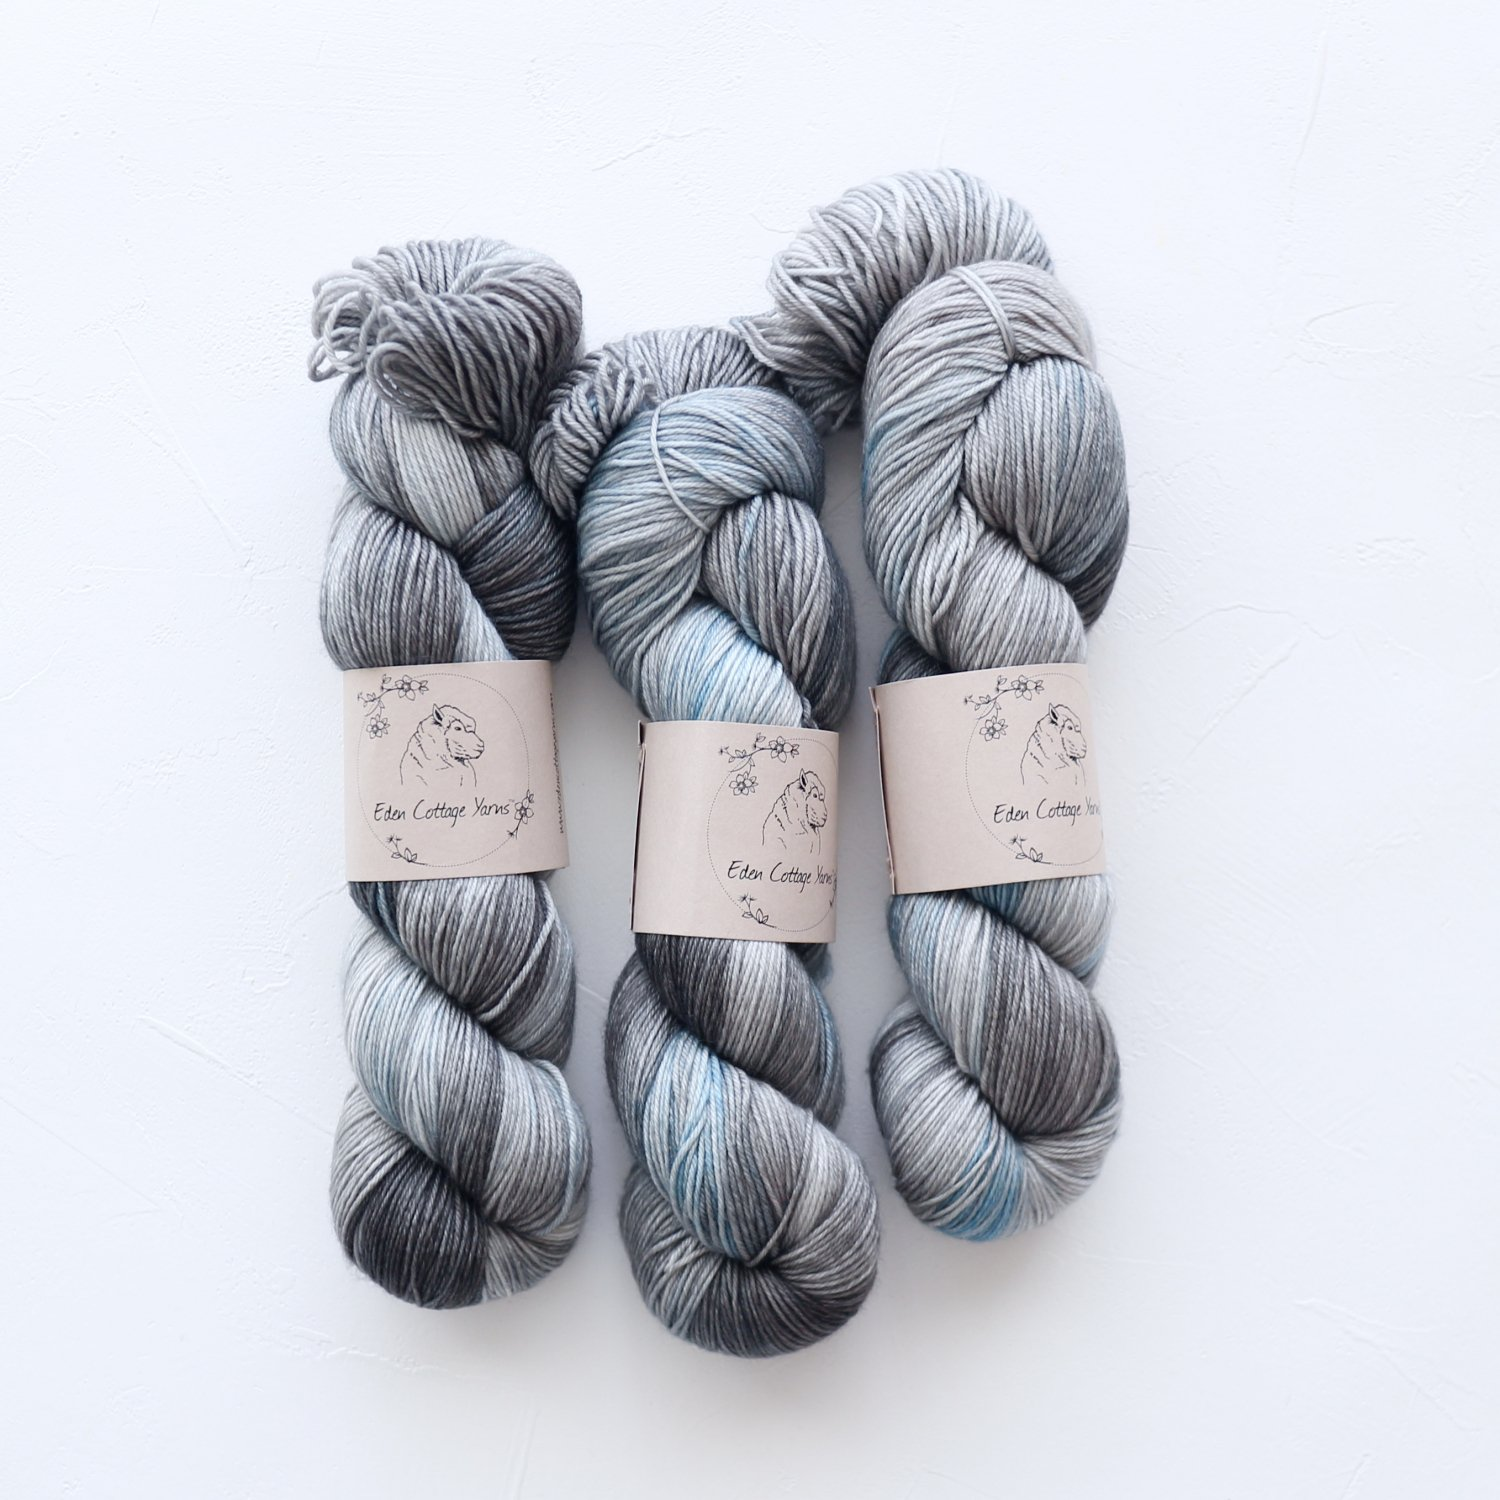 【Eden Cottage Yarns】<br>Pendle 4ply<br>Horizon